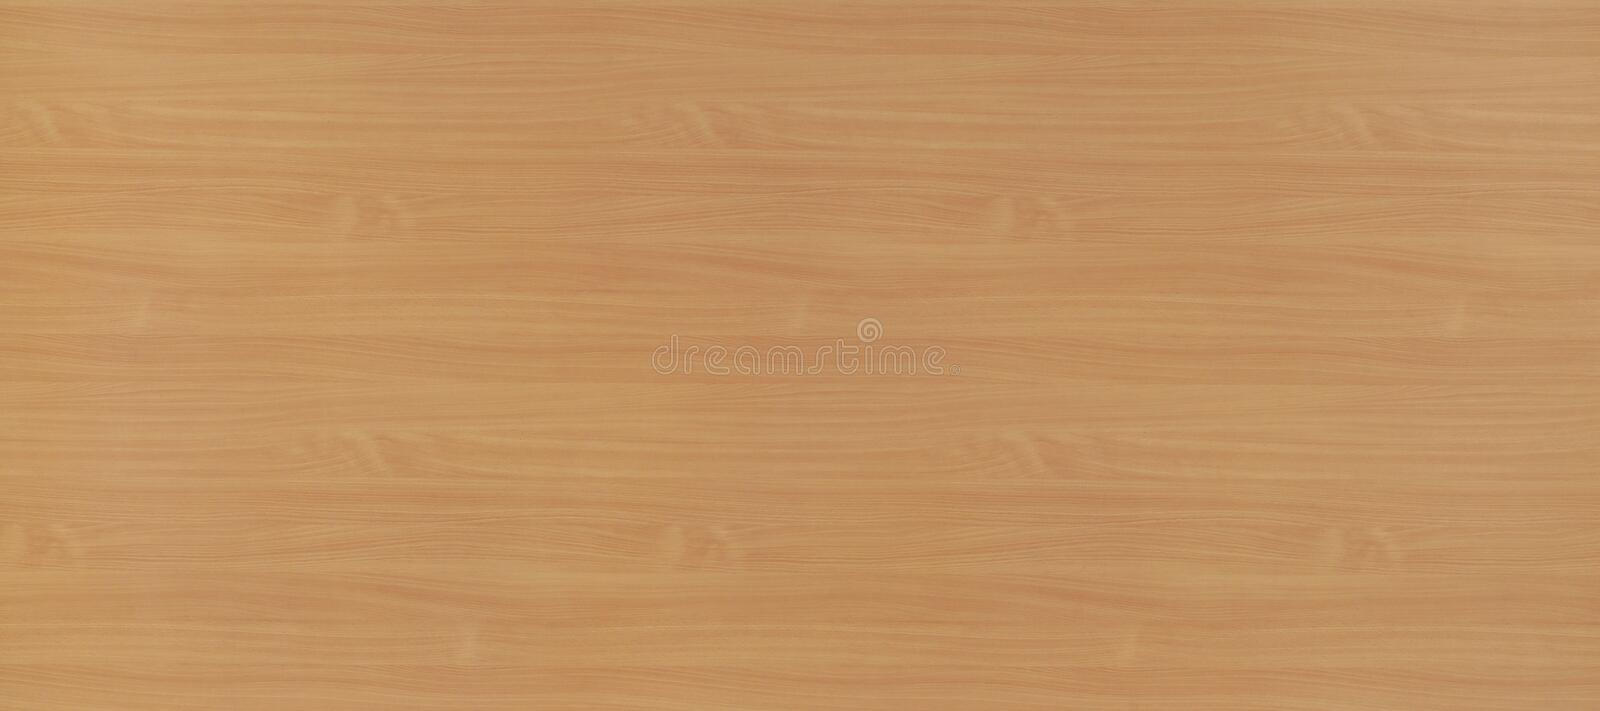 Download Vector Wood Background stock illustration. Image of backdrops - 29431391